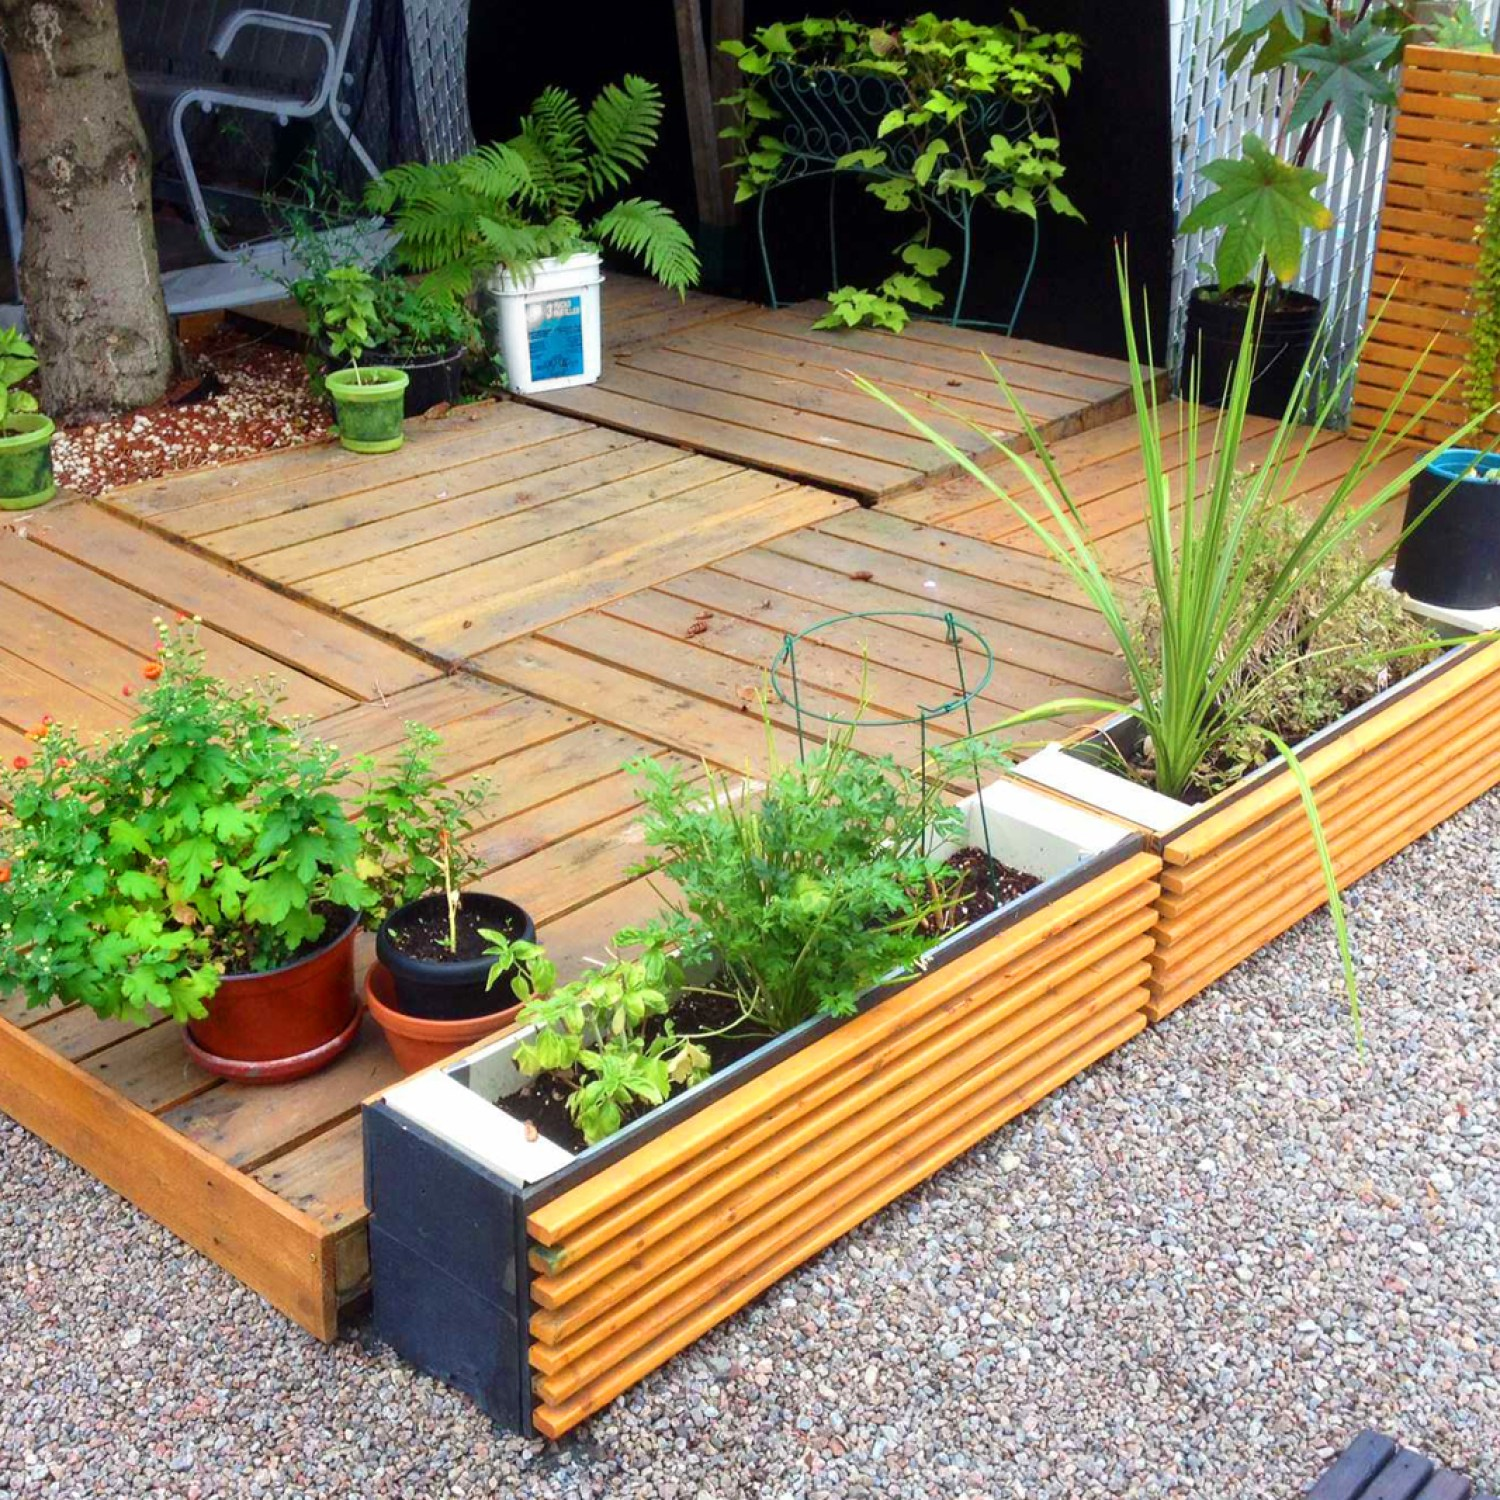 Summer Solutions for Pests, Yard Work & More | Spotlight on Easy Back Garden Ideas id=96417